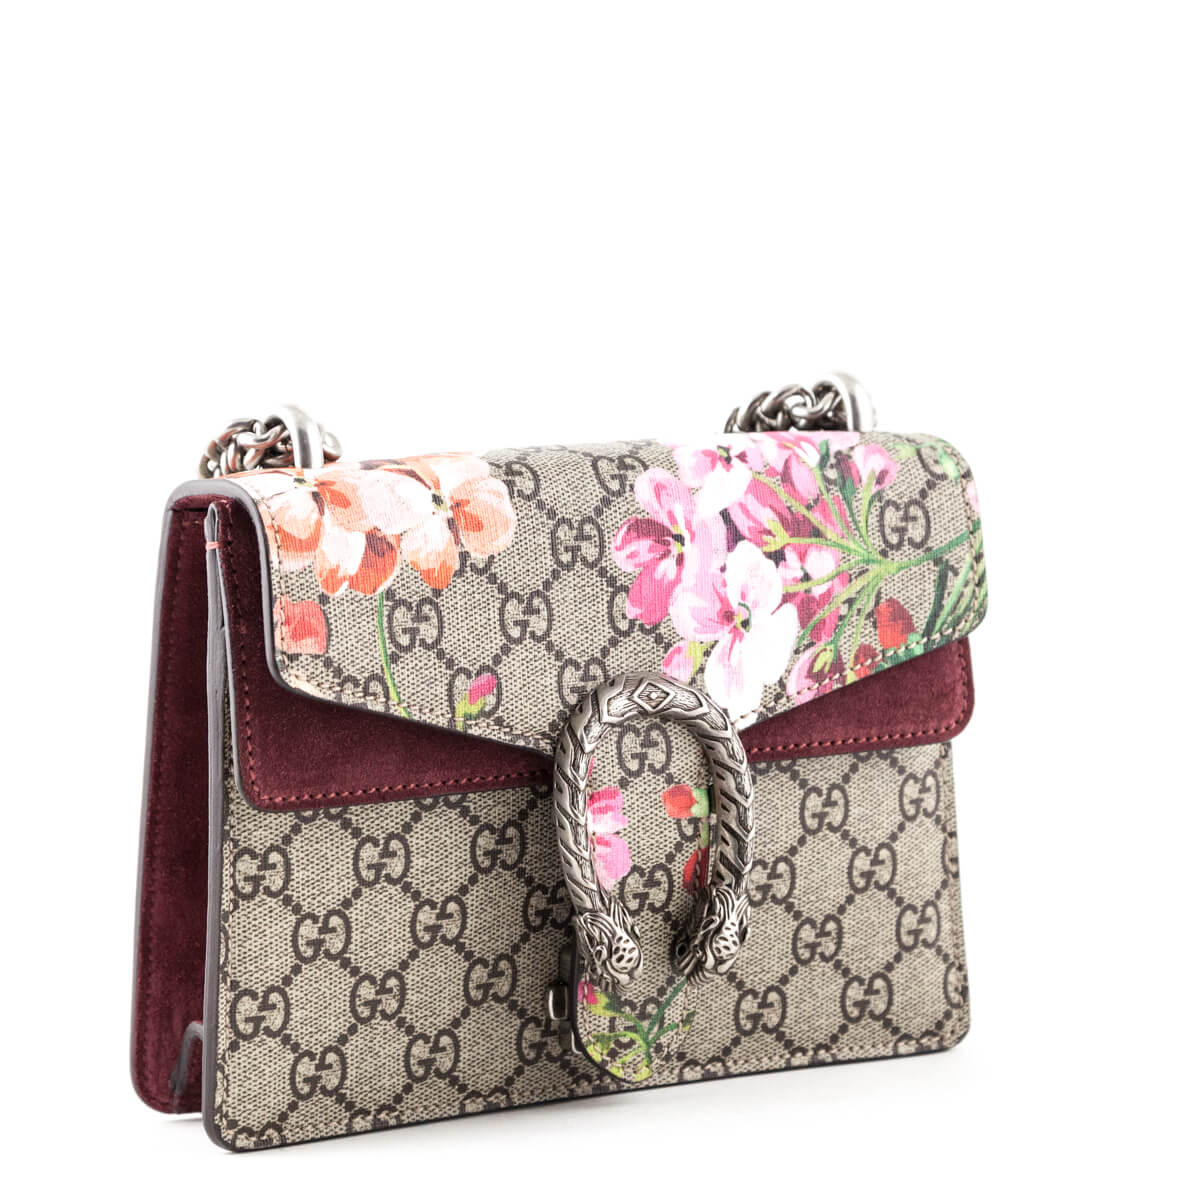 5260d8e38c8d ... Gucci Pink Suede and Canvas GG Blooms Mini Dionysus - LOVE that BAG -  Preowned Authentic ...